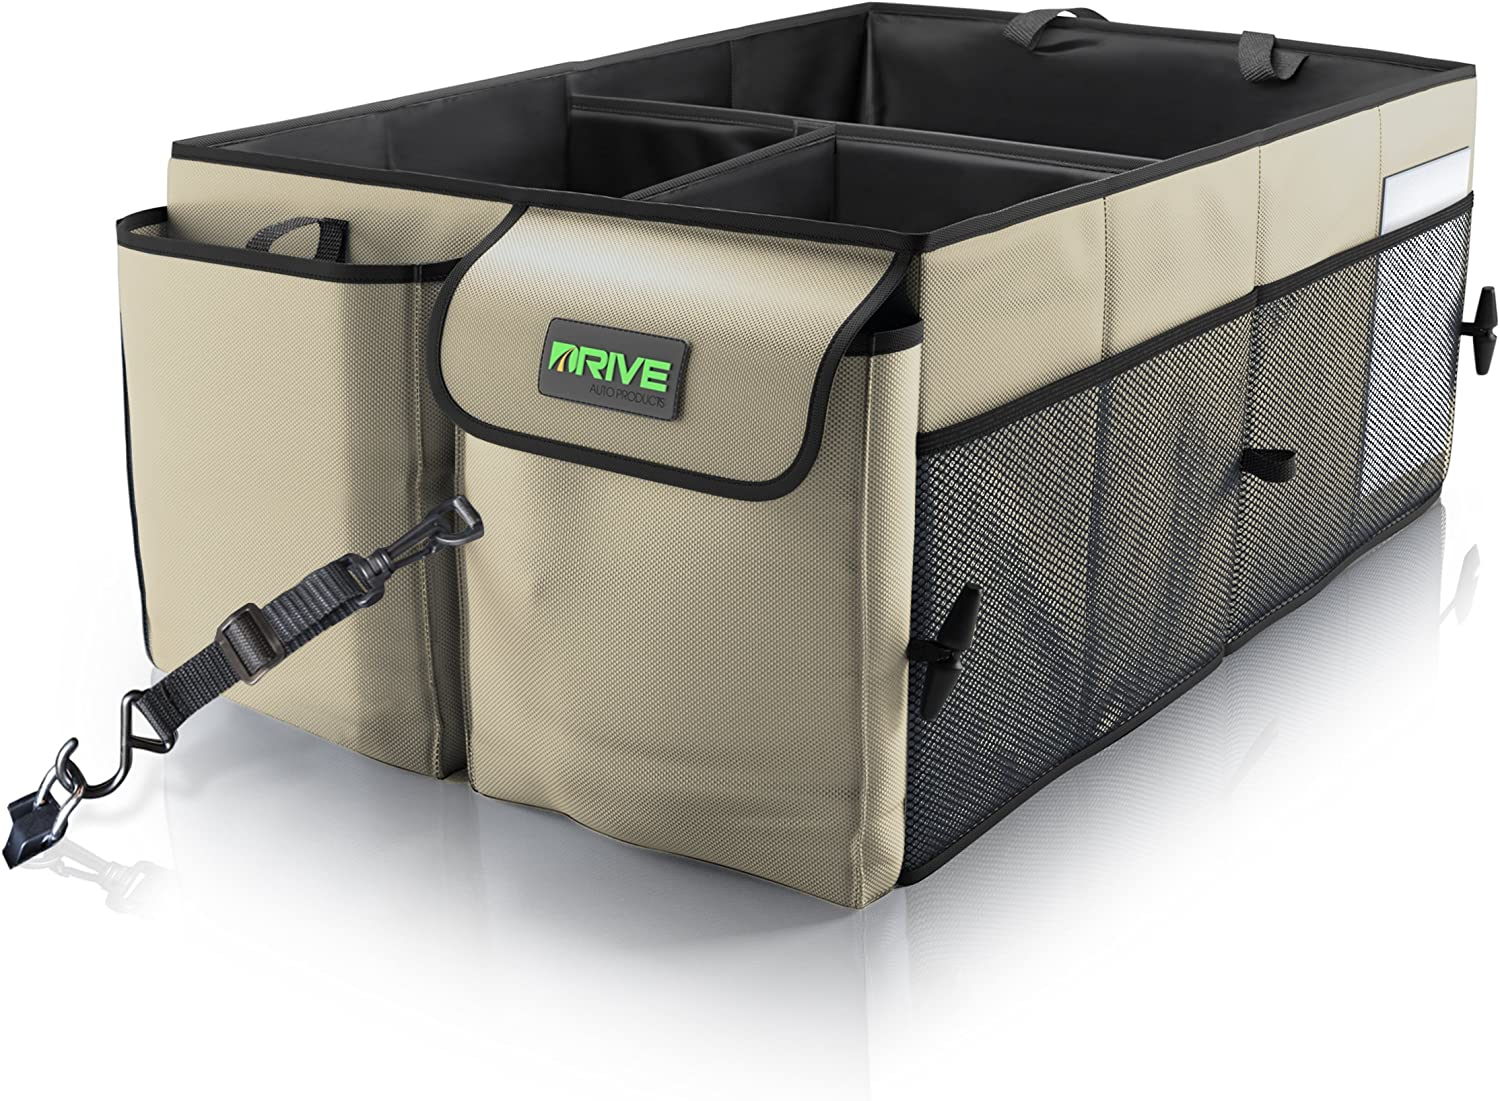 Drive Auto Products Car Cargo Trunk Organizer, Folding Compartments are Easily Expandable to Suit Any in-Vehicle Organization Needs, Secure Tie-Down Strap System, Made of Durable Oxford Fabric (Tan)